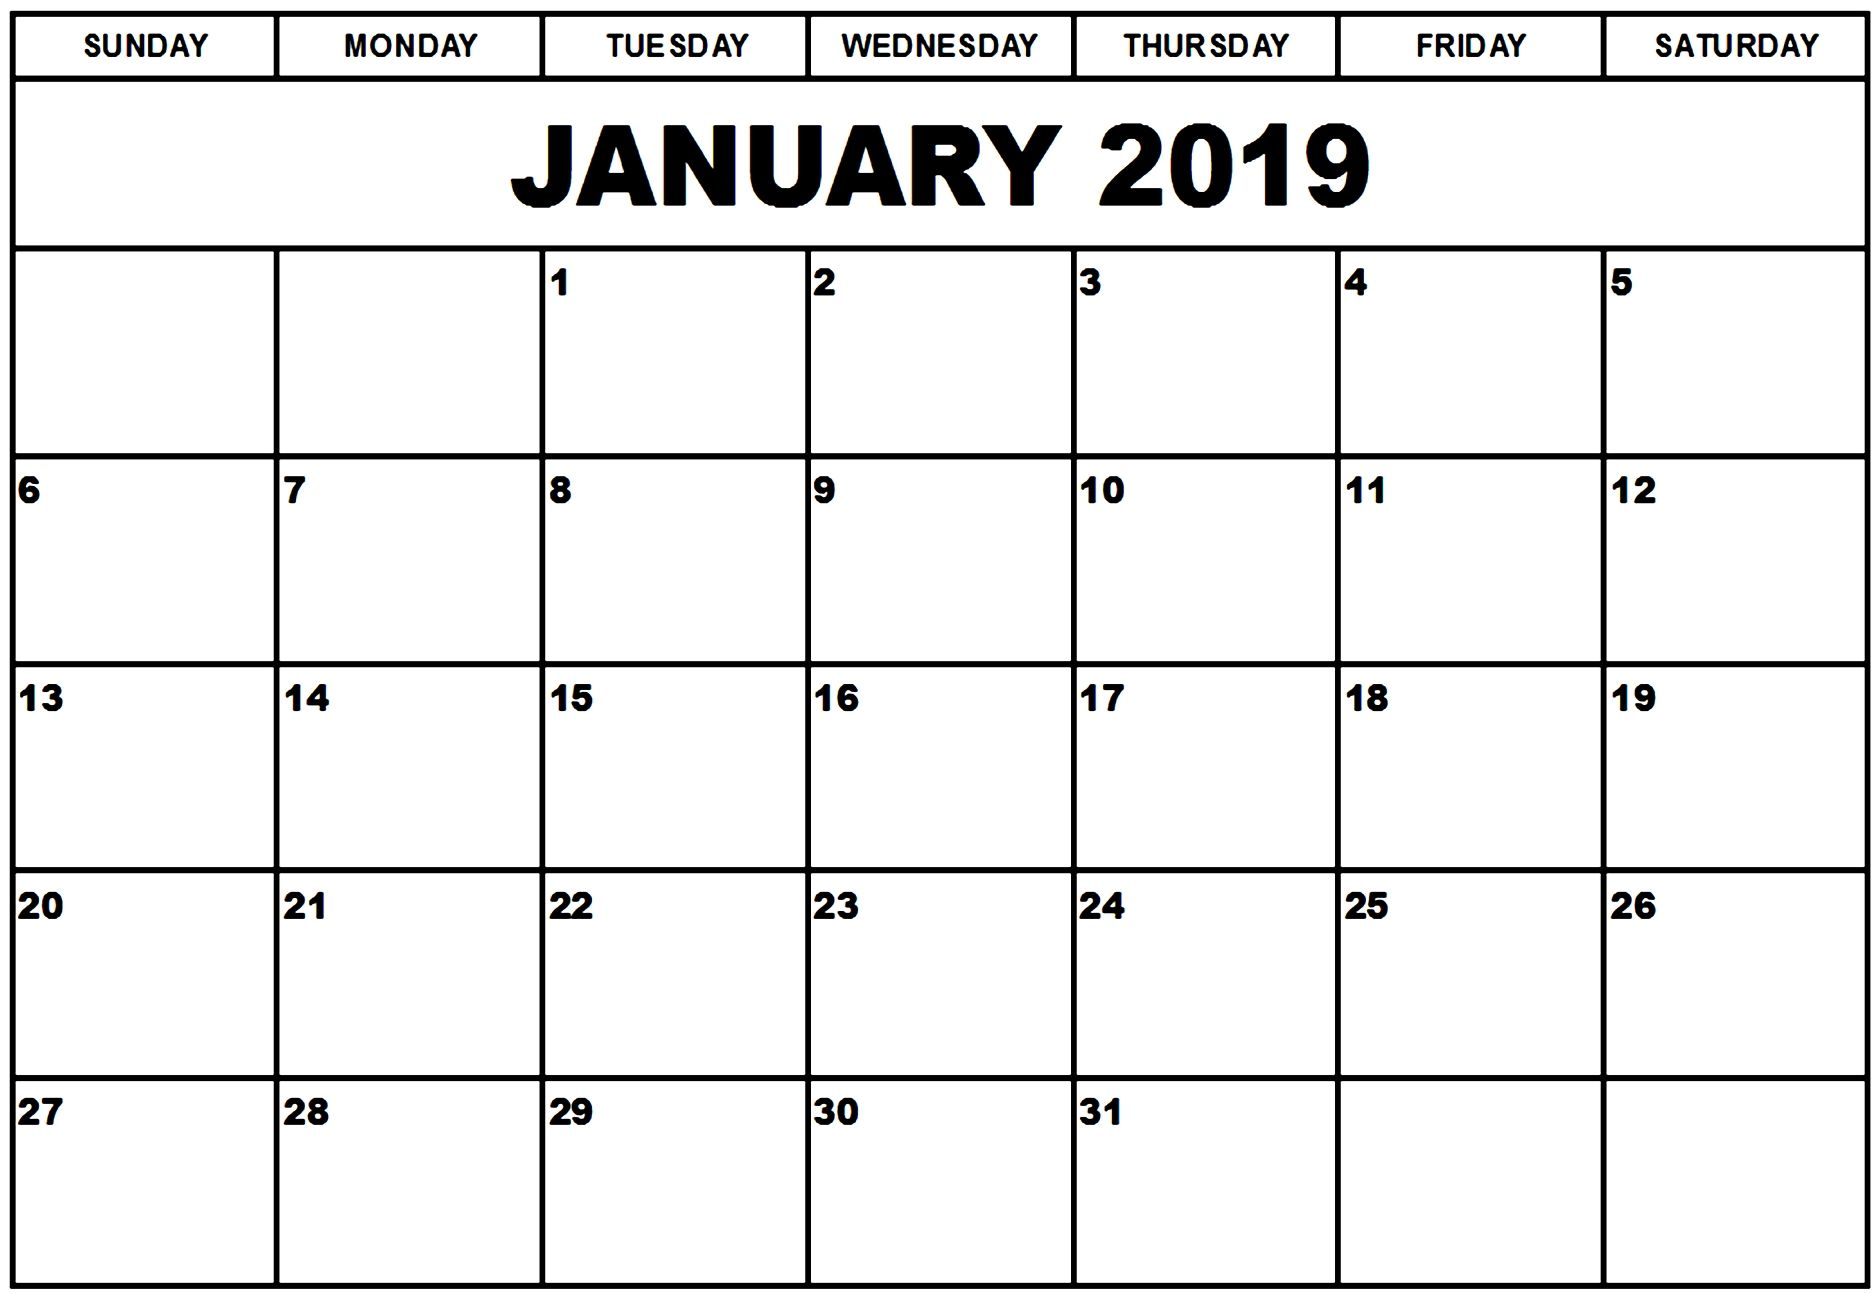 January 2019 Calendar Template Manage Work Monthly January2019 January2019calendartemplate Januar August Calendar Printable Calendar Template Excel Calendar